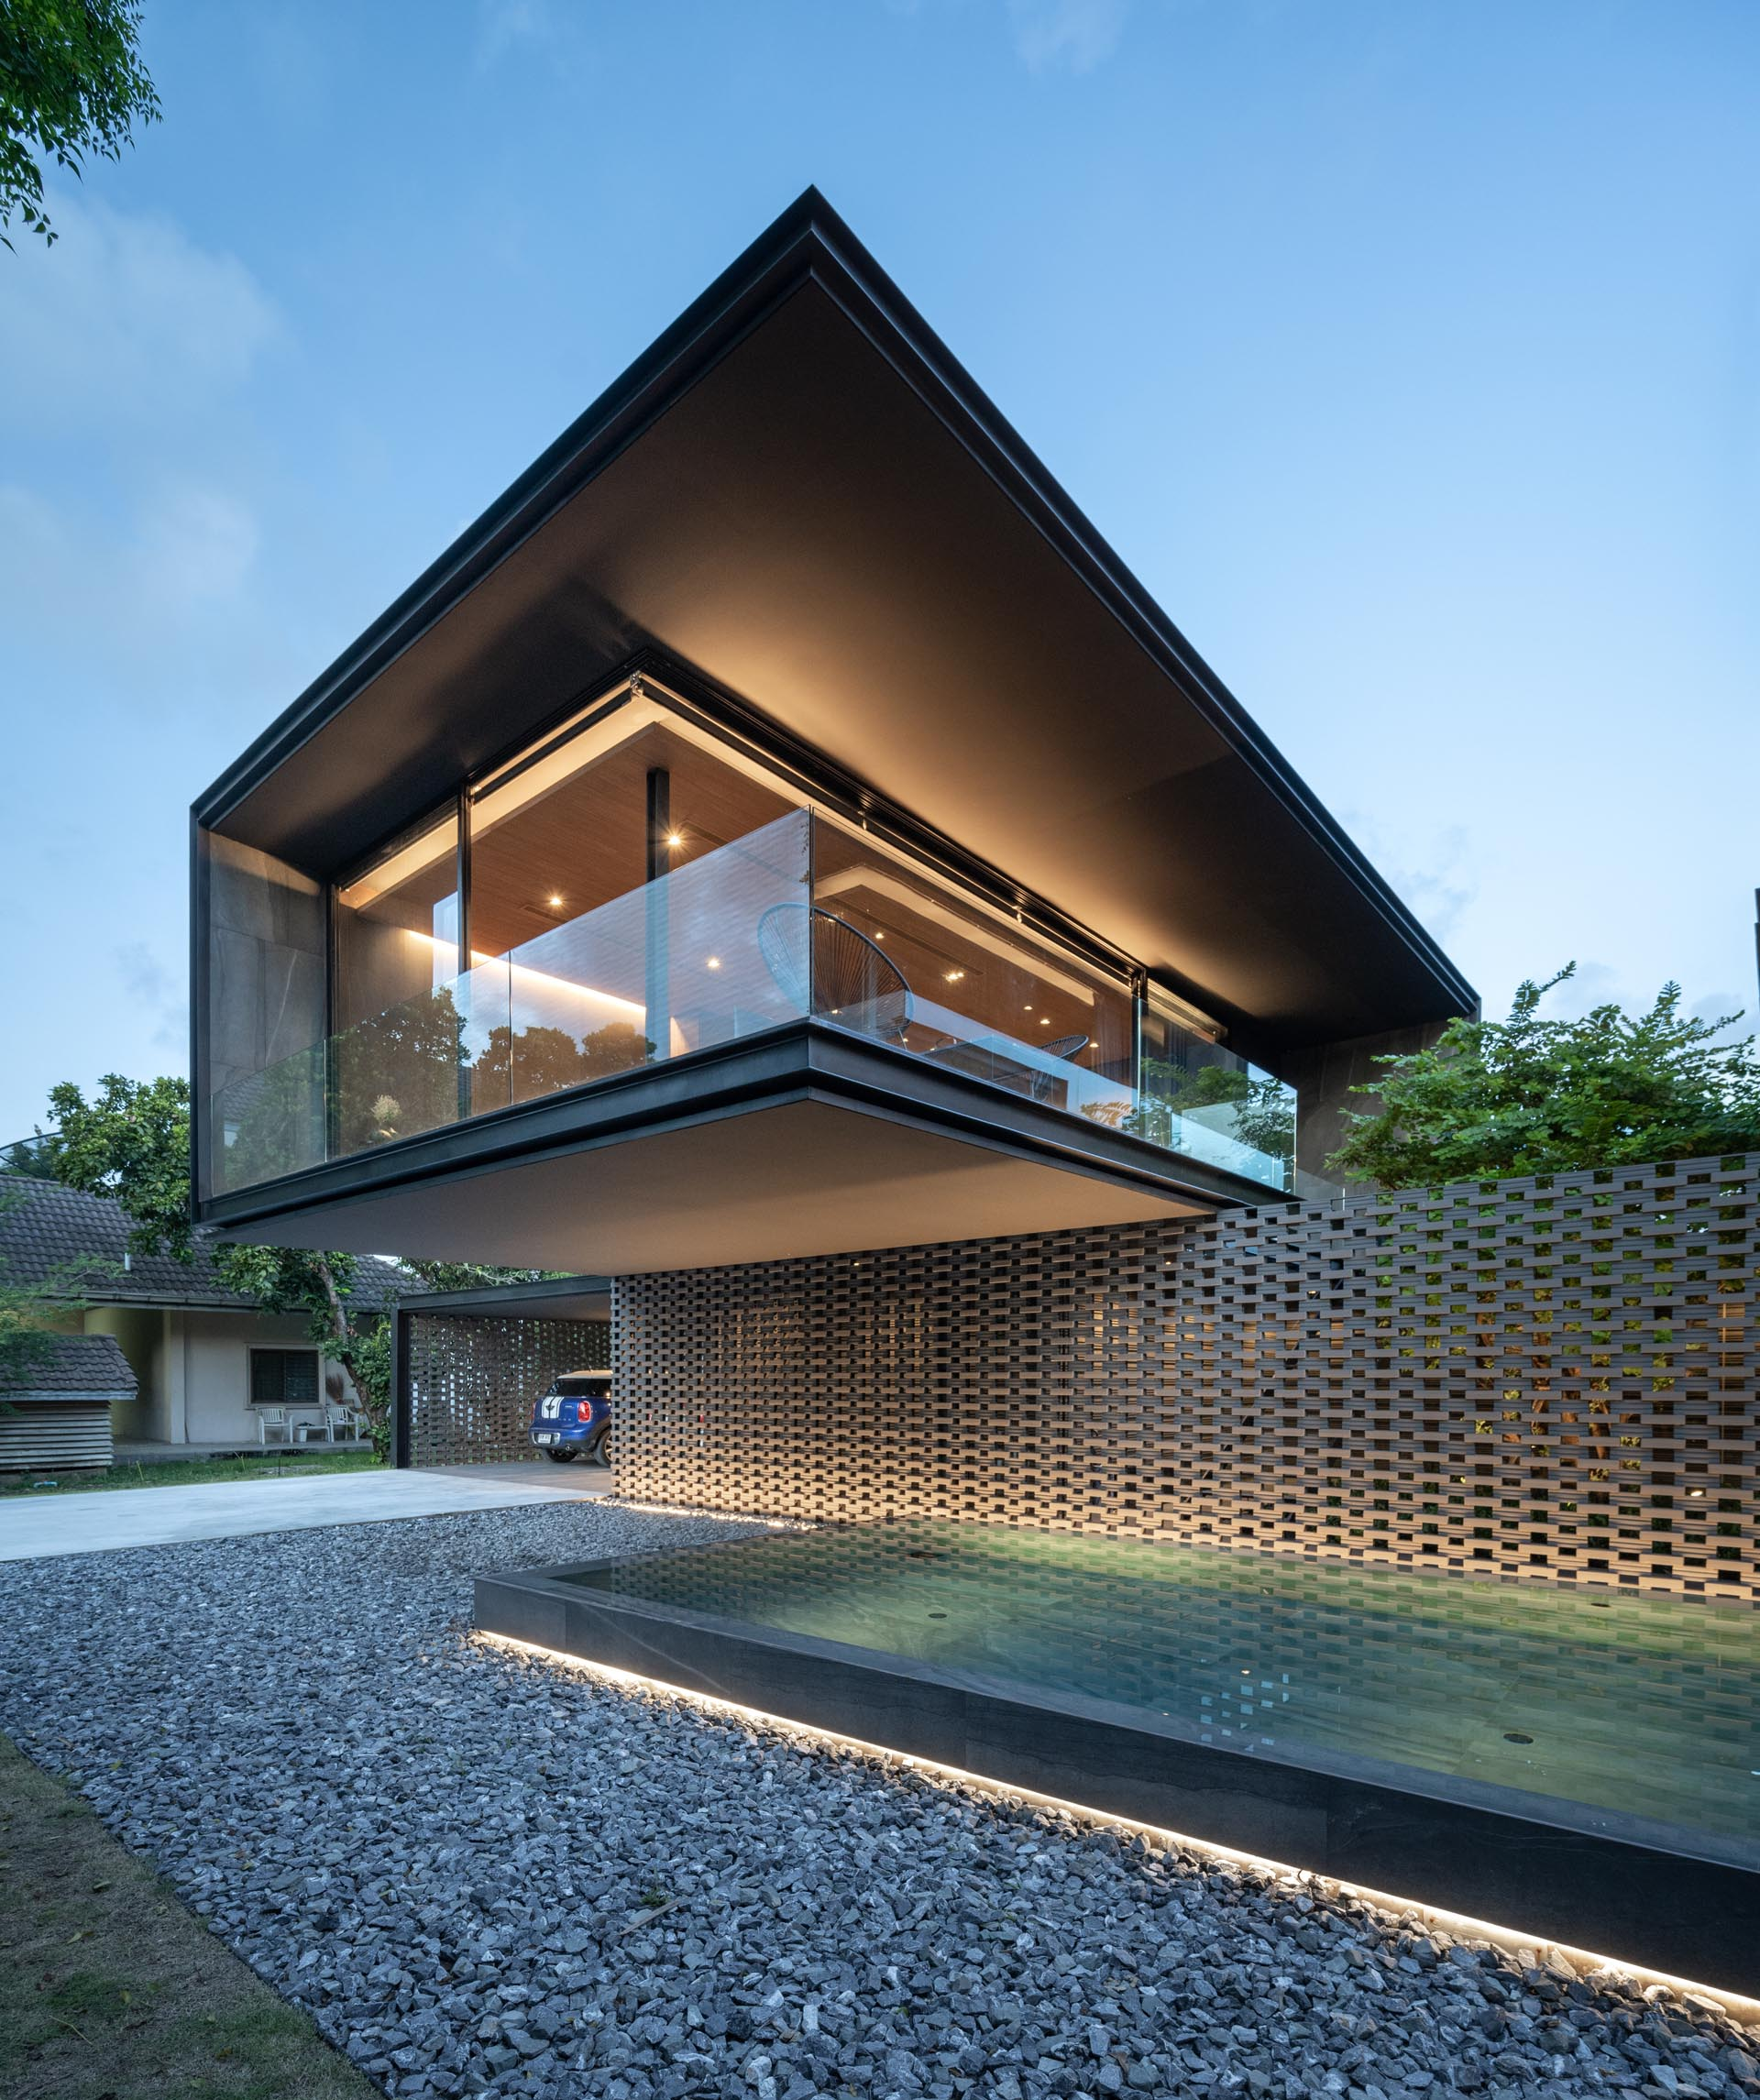 Lighting has been used to highlight the horizontal lights of this house design.